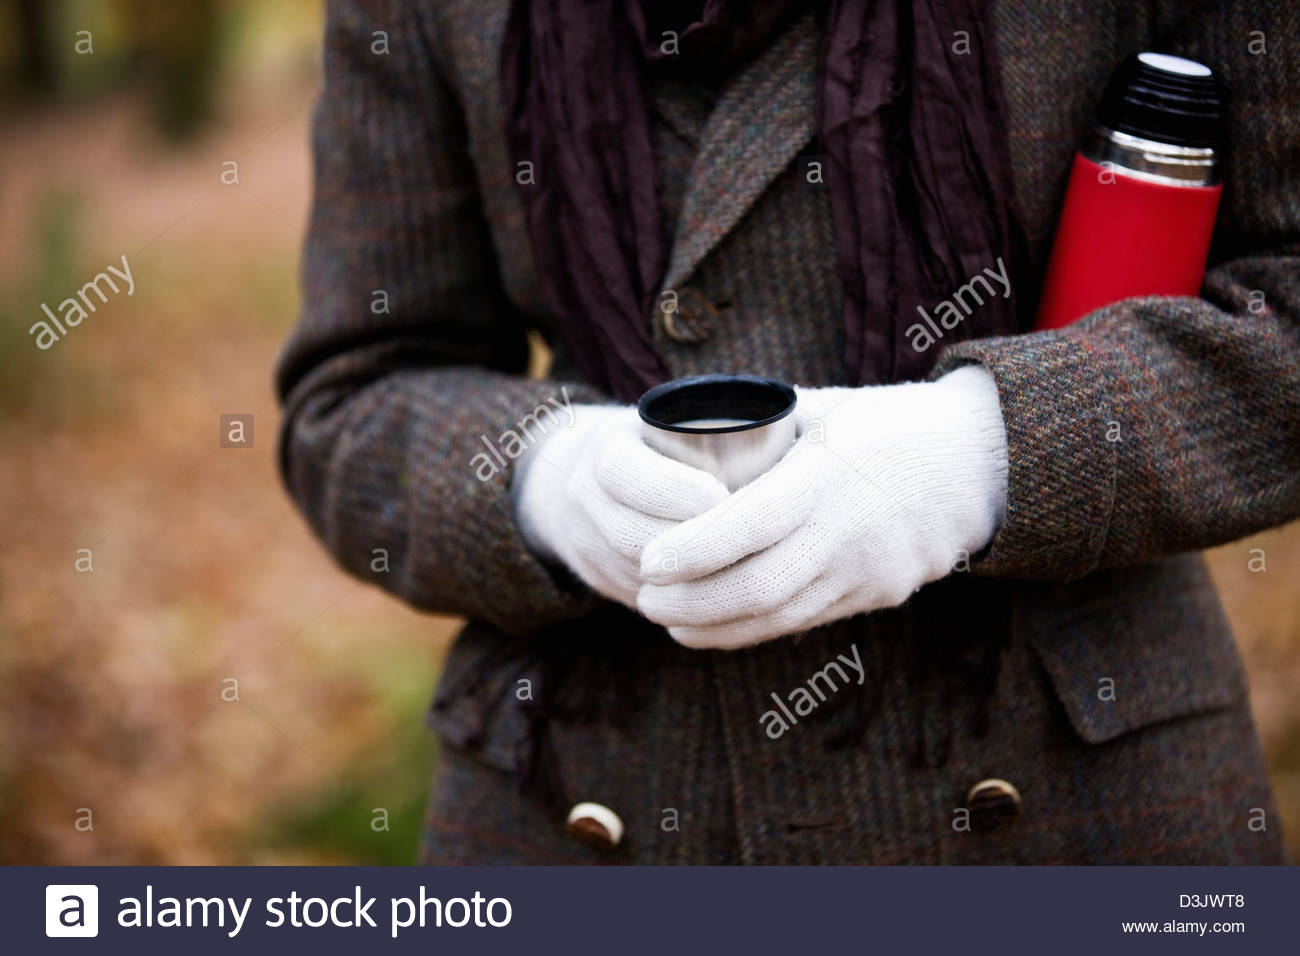 A woman holding a hot drink and flask outside in autumn - Stock Image